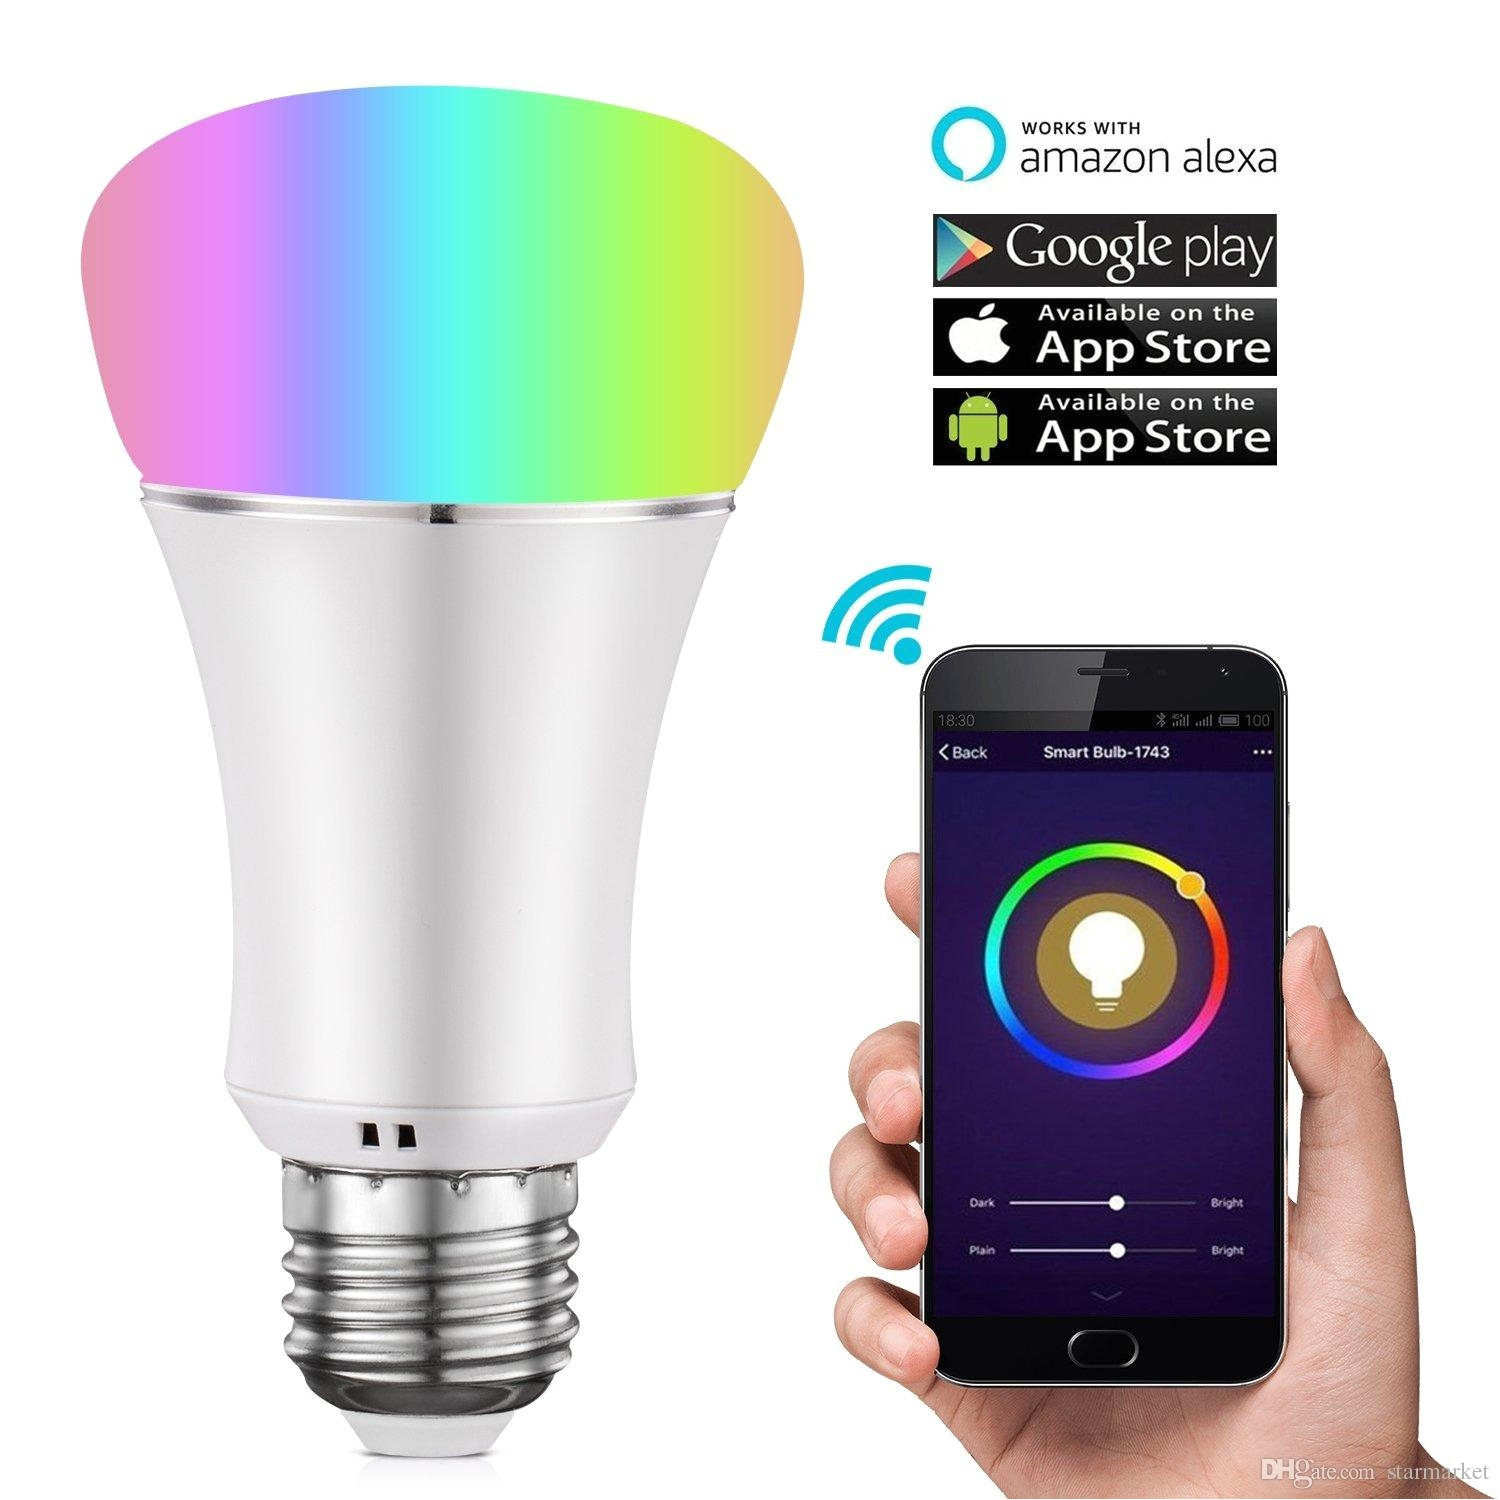 wifi smart light bulb multicolor dimmable led lampwake up lights no hub required magic light compatible with alexa and google assistant best led light